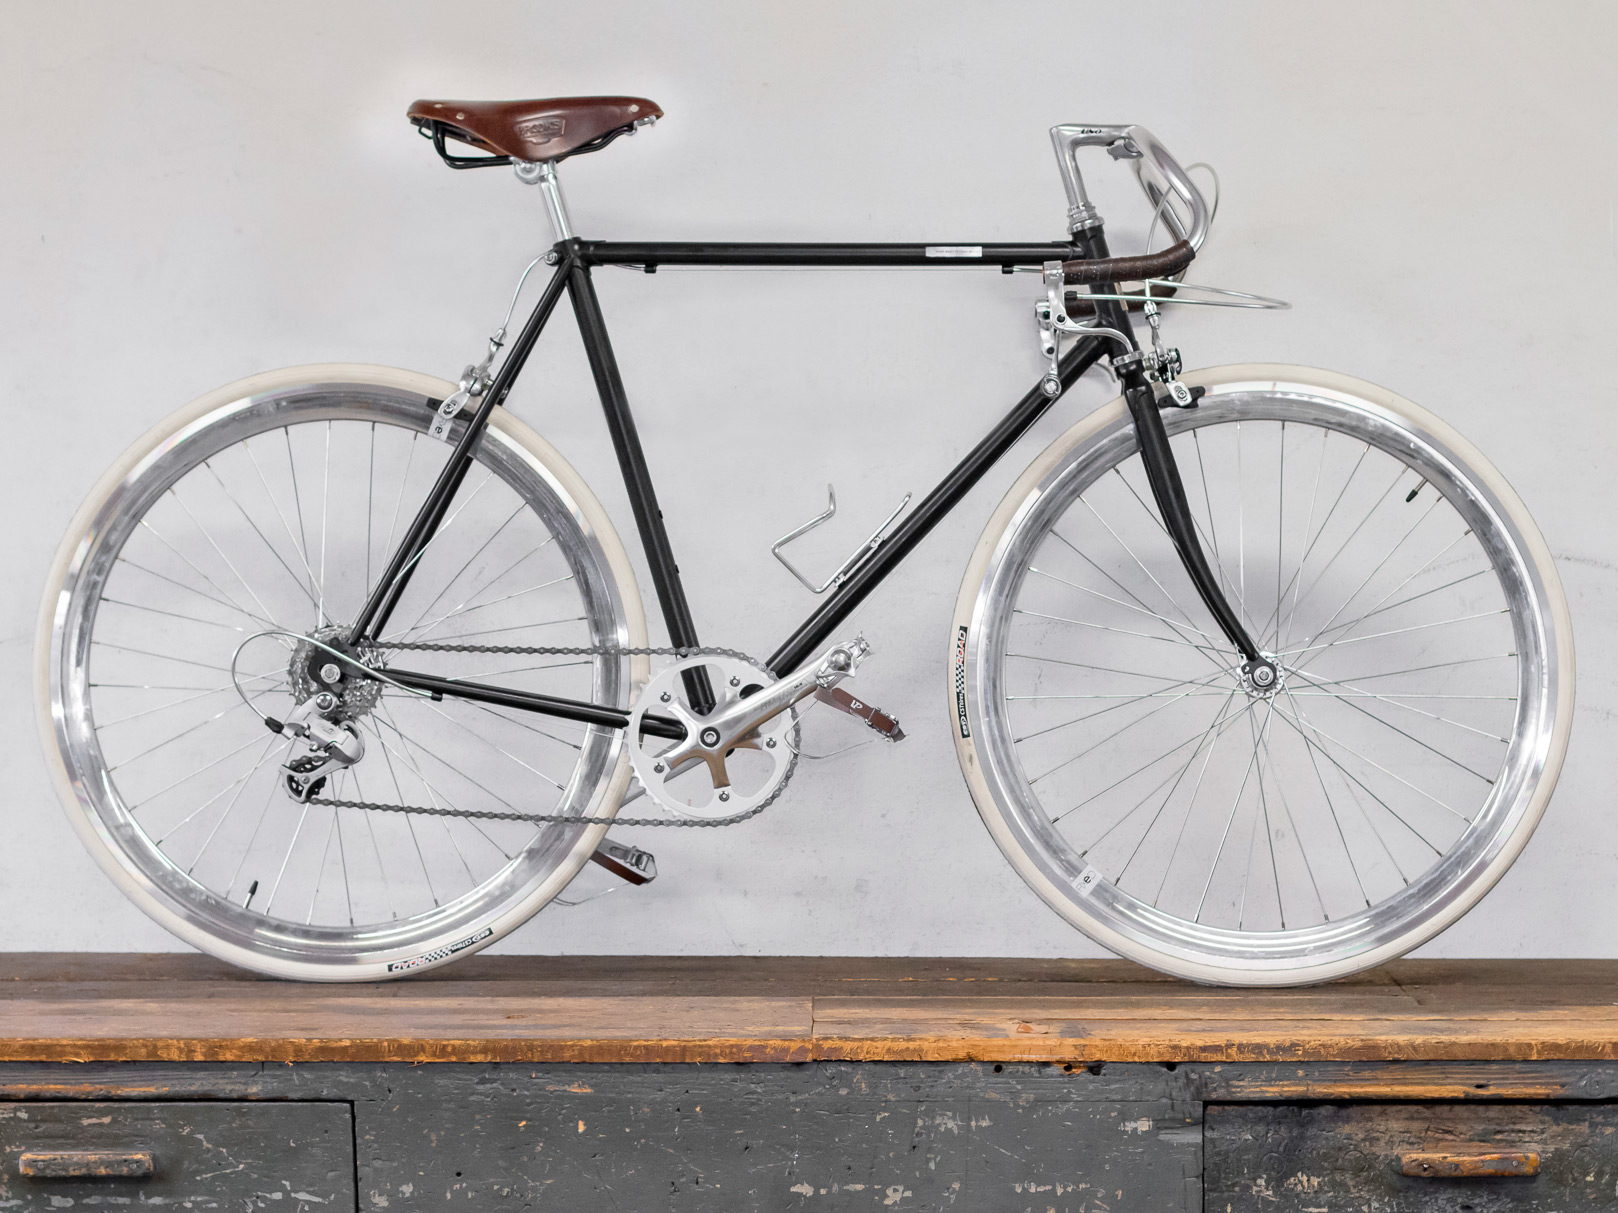 Heritage Division Brings Handmade Italian City Riding Classics To